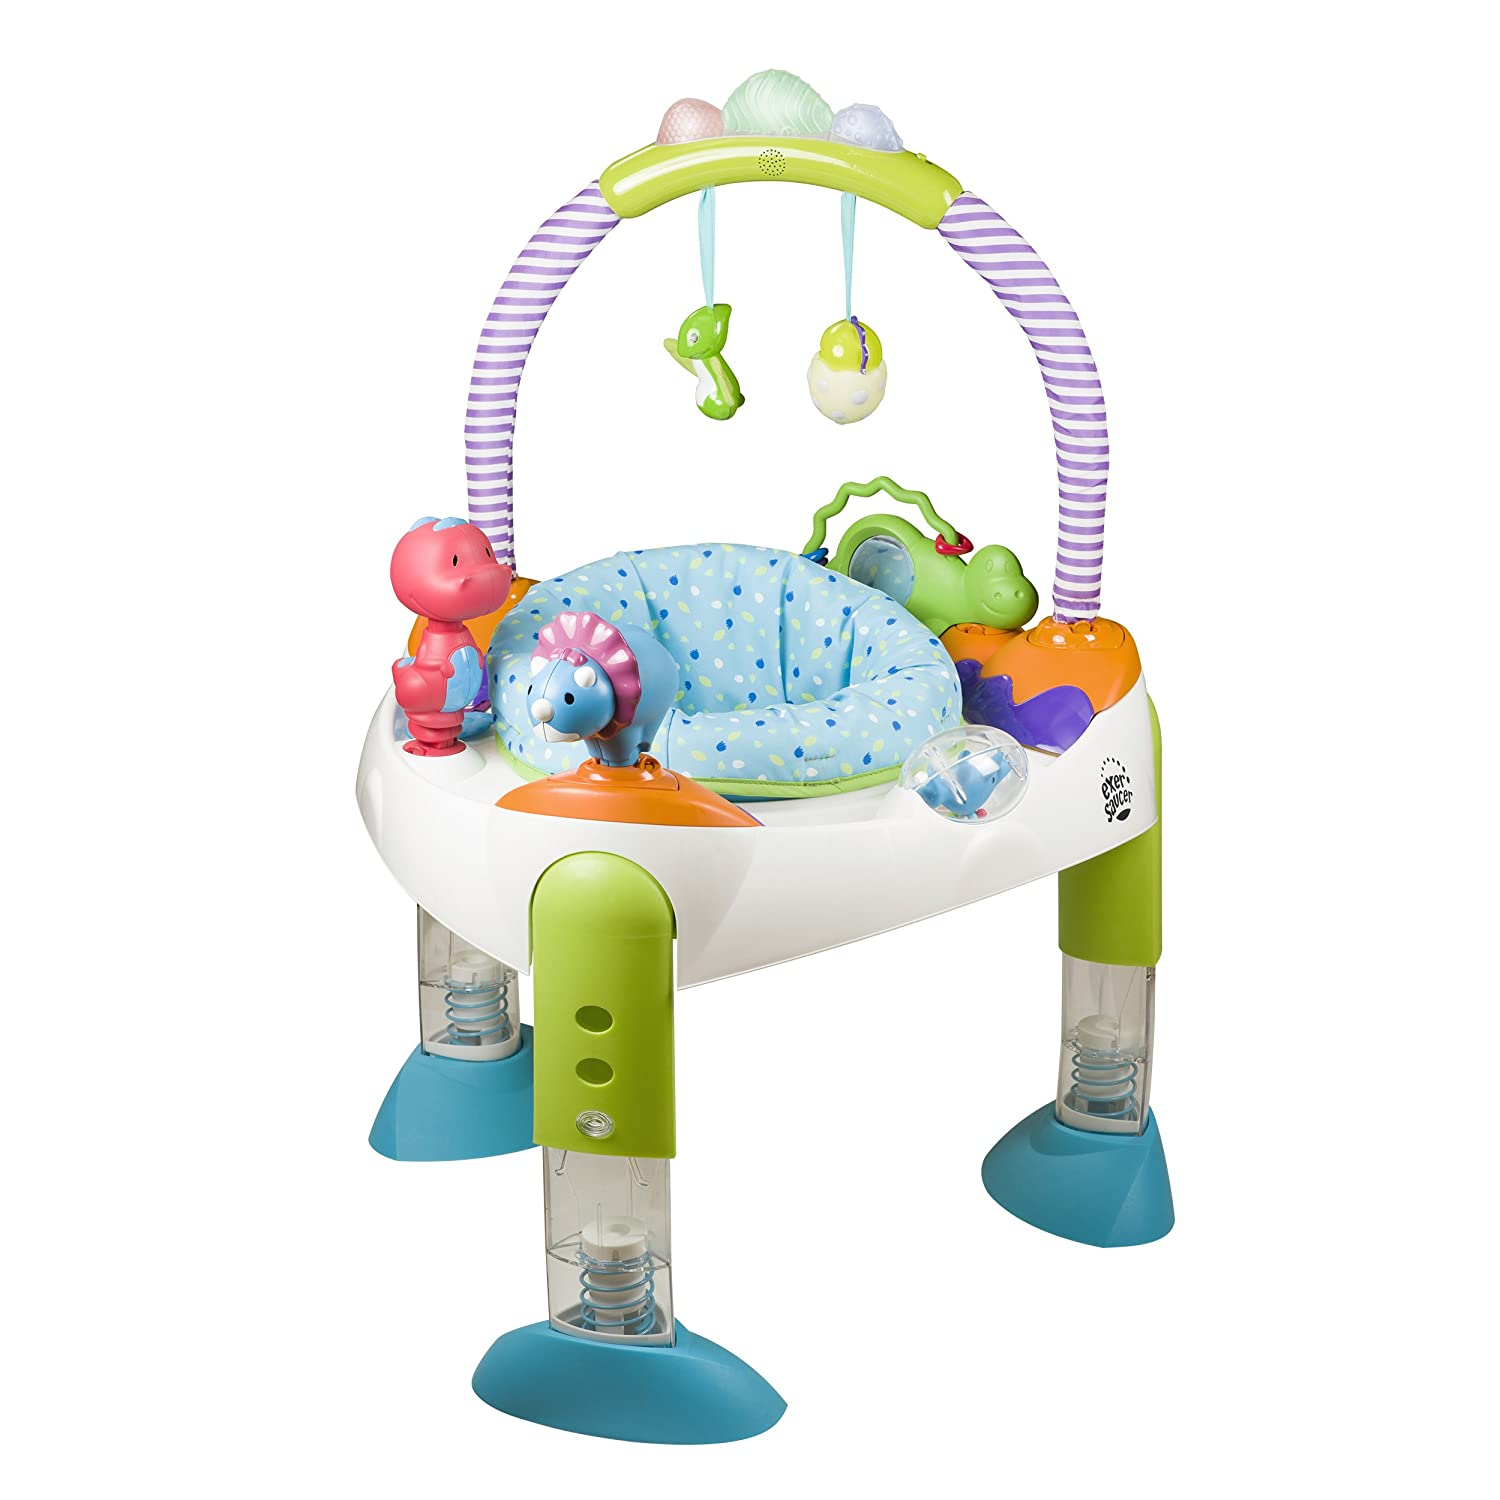 Evenflo Exersaucer for Baby Fast Fold & Go, D is for Dino